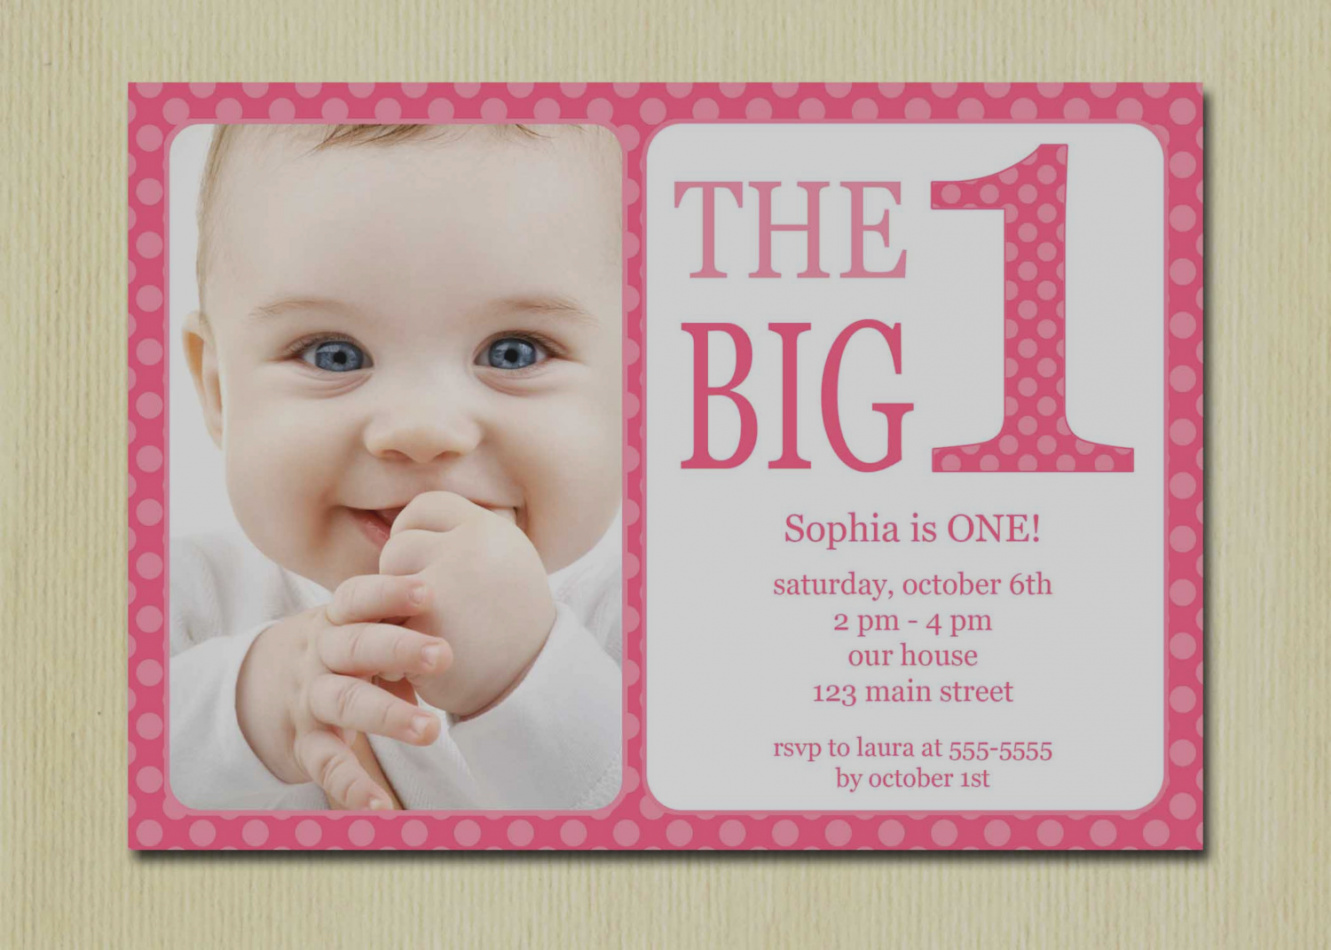 one year old birthday card wishes ; best-1-year-old-birthday-card-design-birthday-wishes-for-1-year-old-son-in-conjunction-with